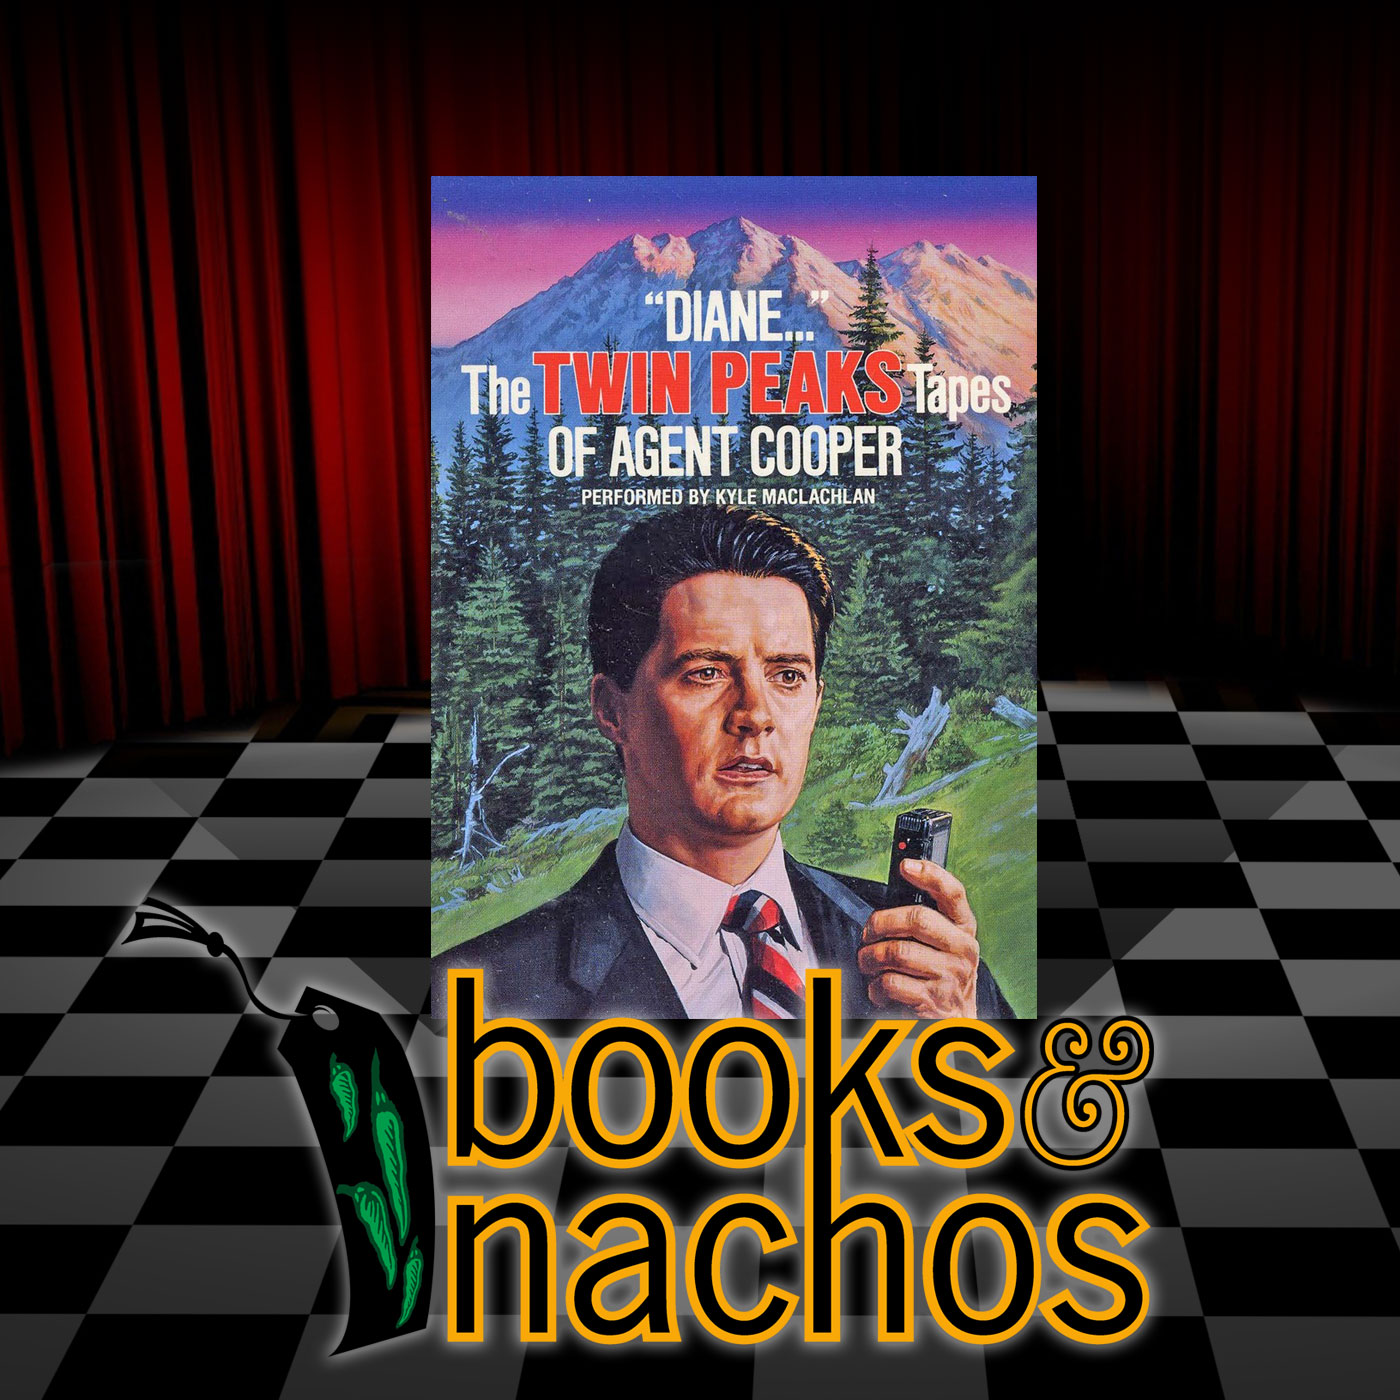 Books & Nachos Review: Twin Peaks: Diane - Twin Peaks Tapes of Agent Cooper by Scott Frost